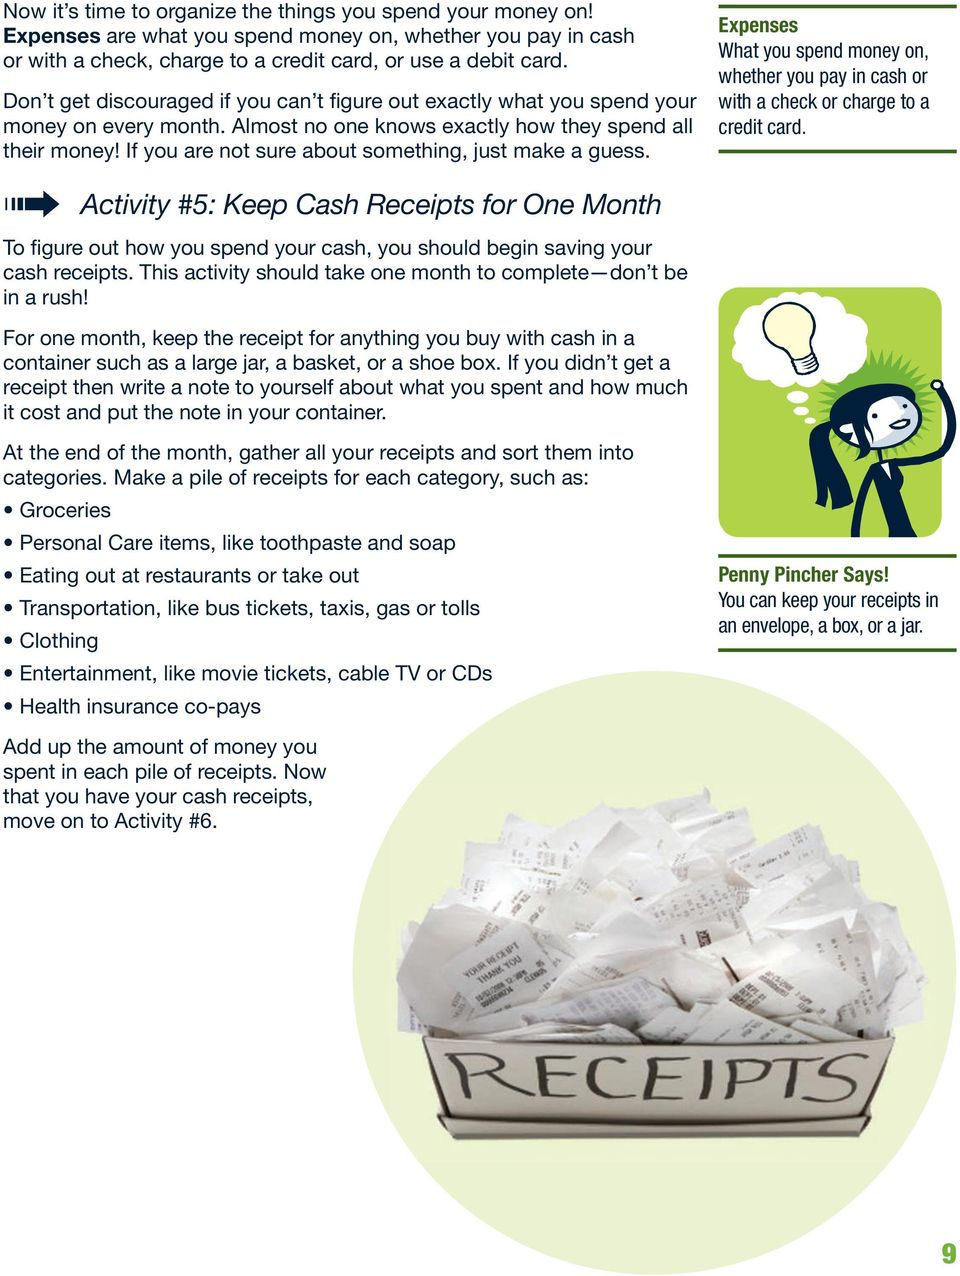 If you are not sure about something, just make a guess. Activity #5: Keep Cash Receipts for One Month To figure out how you spend your cash, you should begin saving your cash receipts.